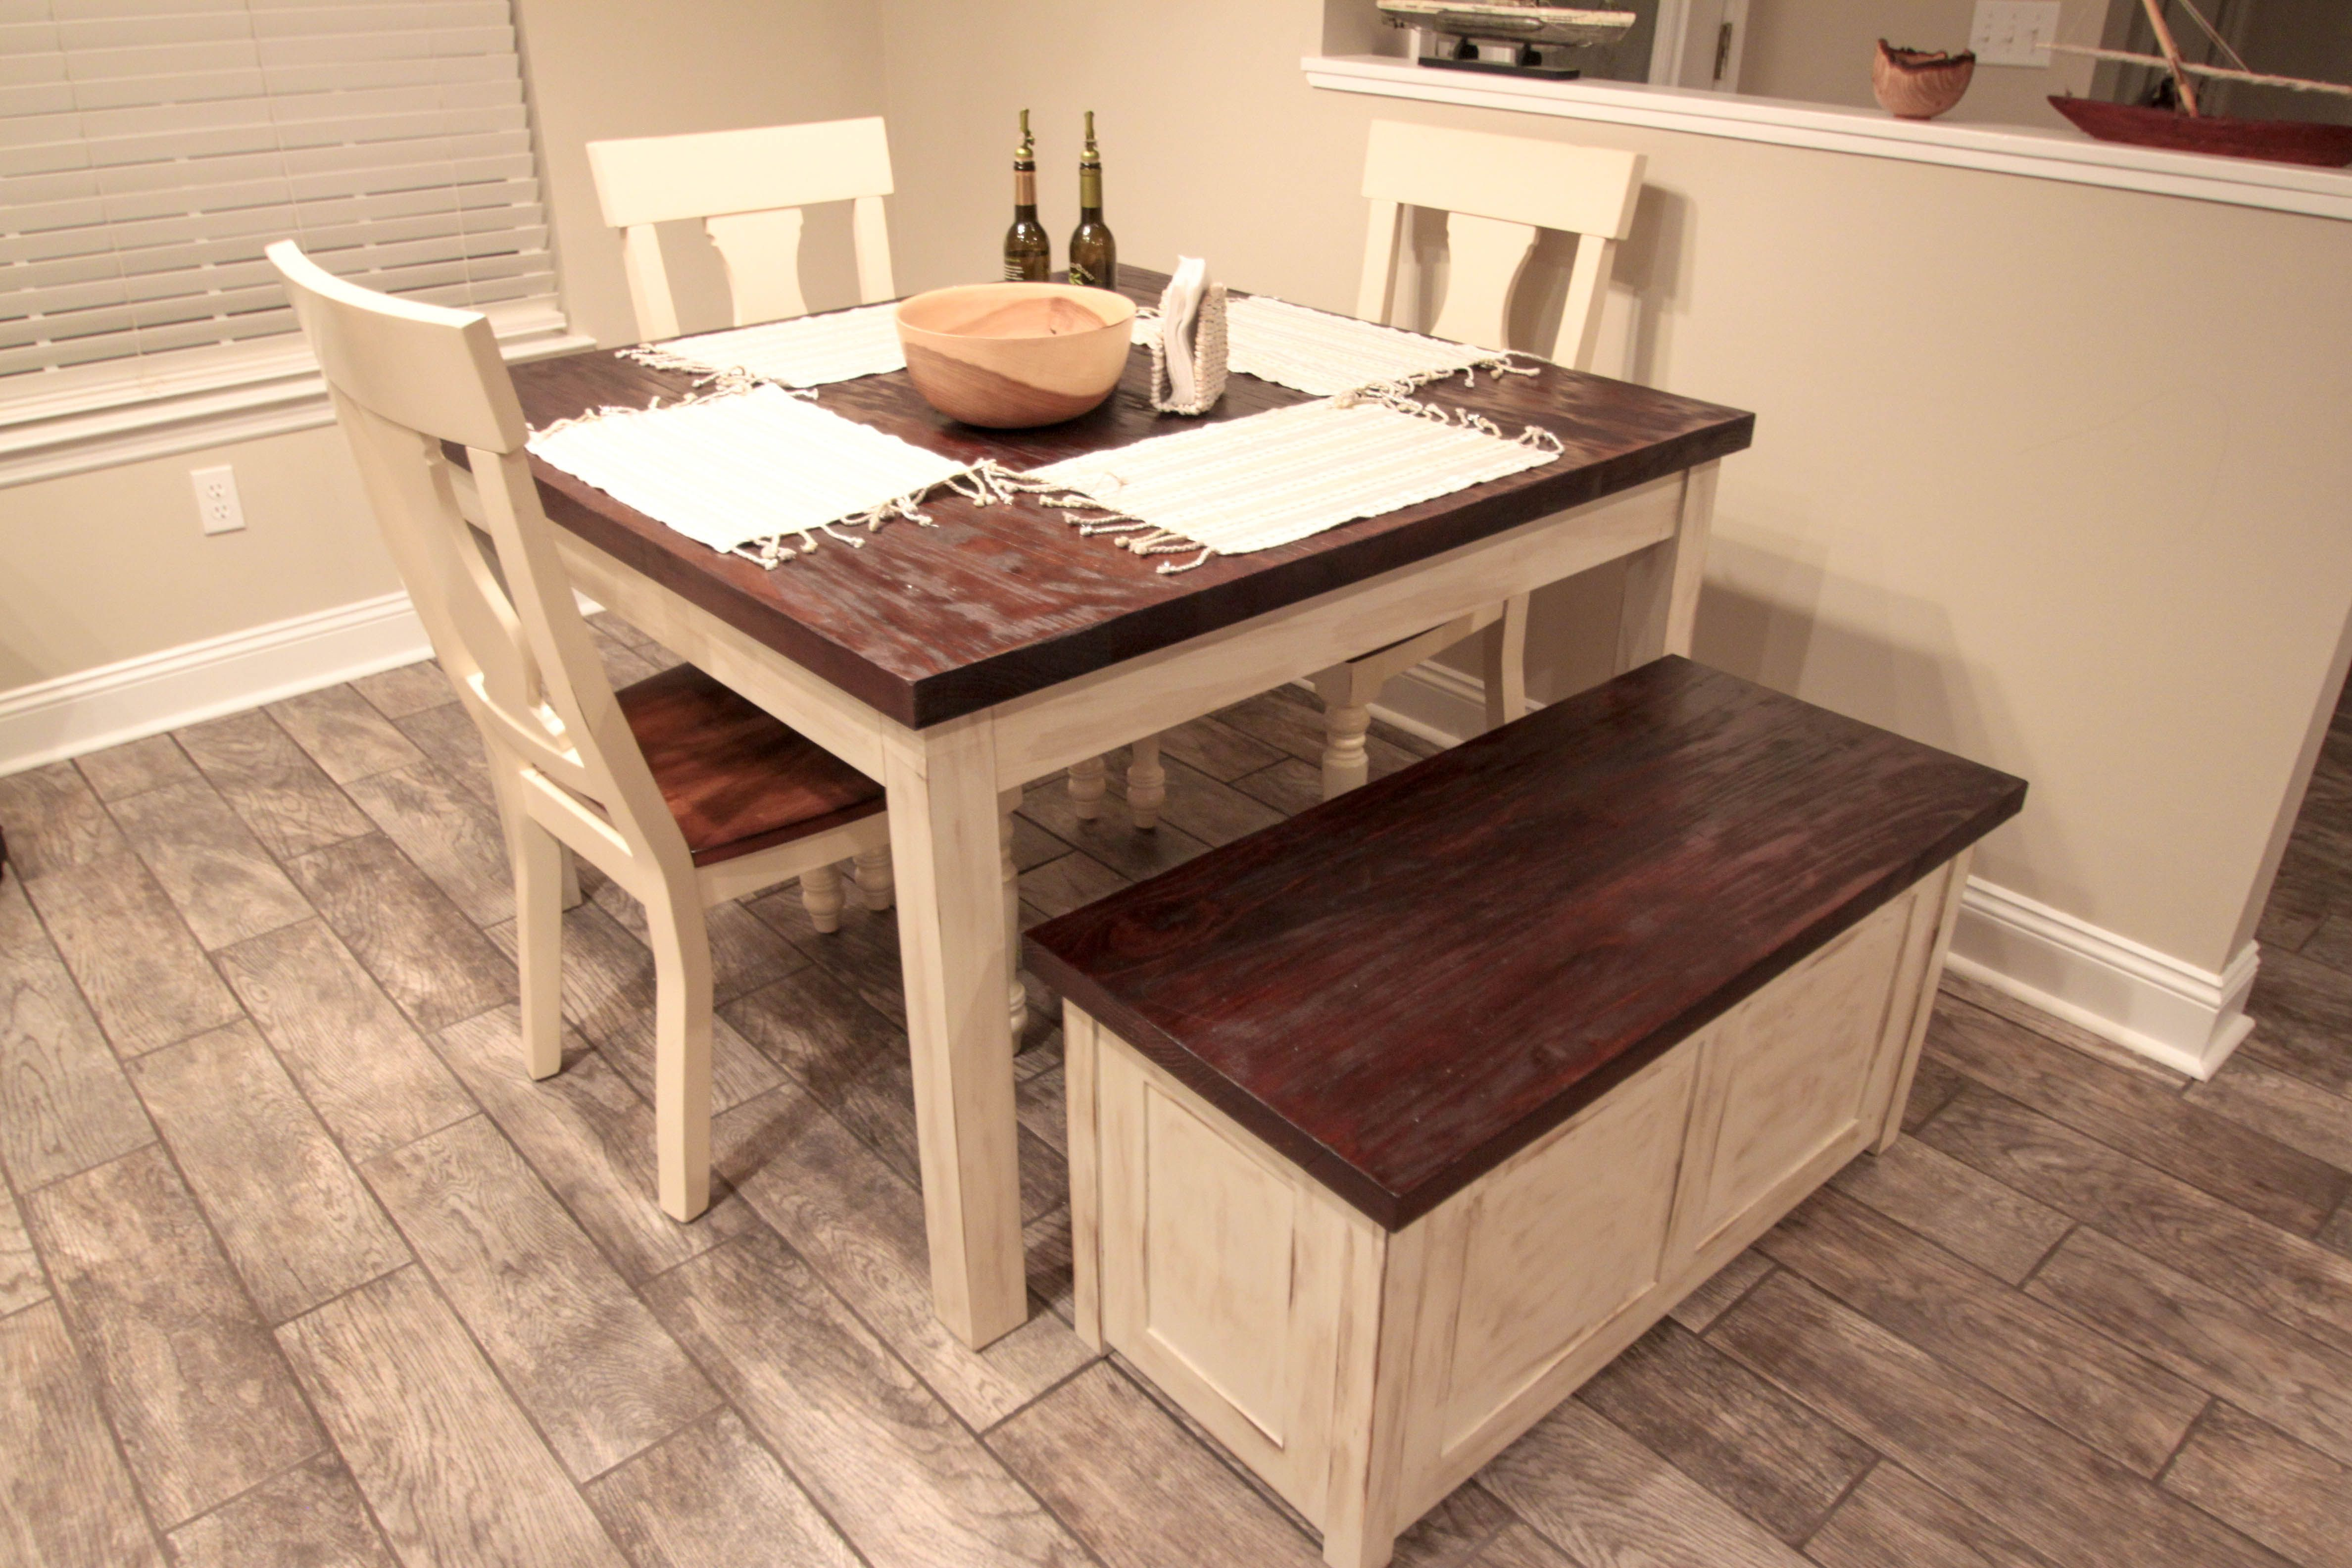 Hand Made Rustic Farmhouse Table And Storage Bench By Chip